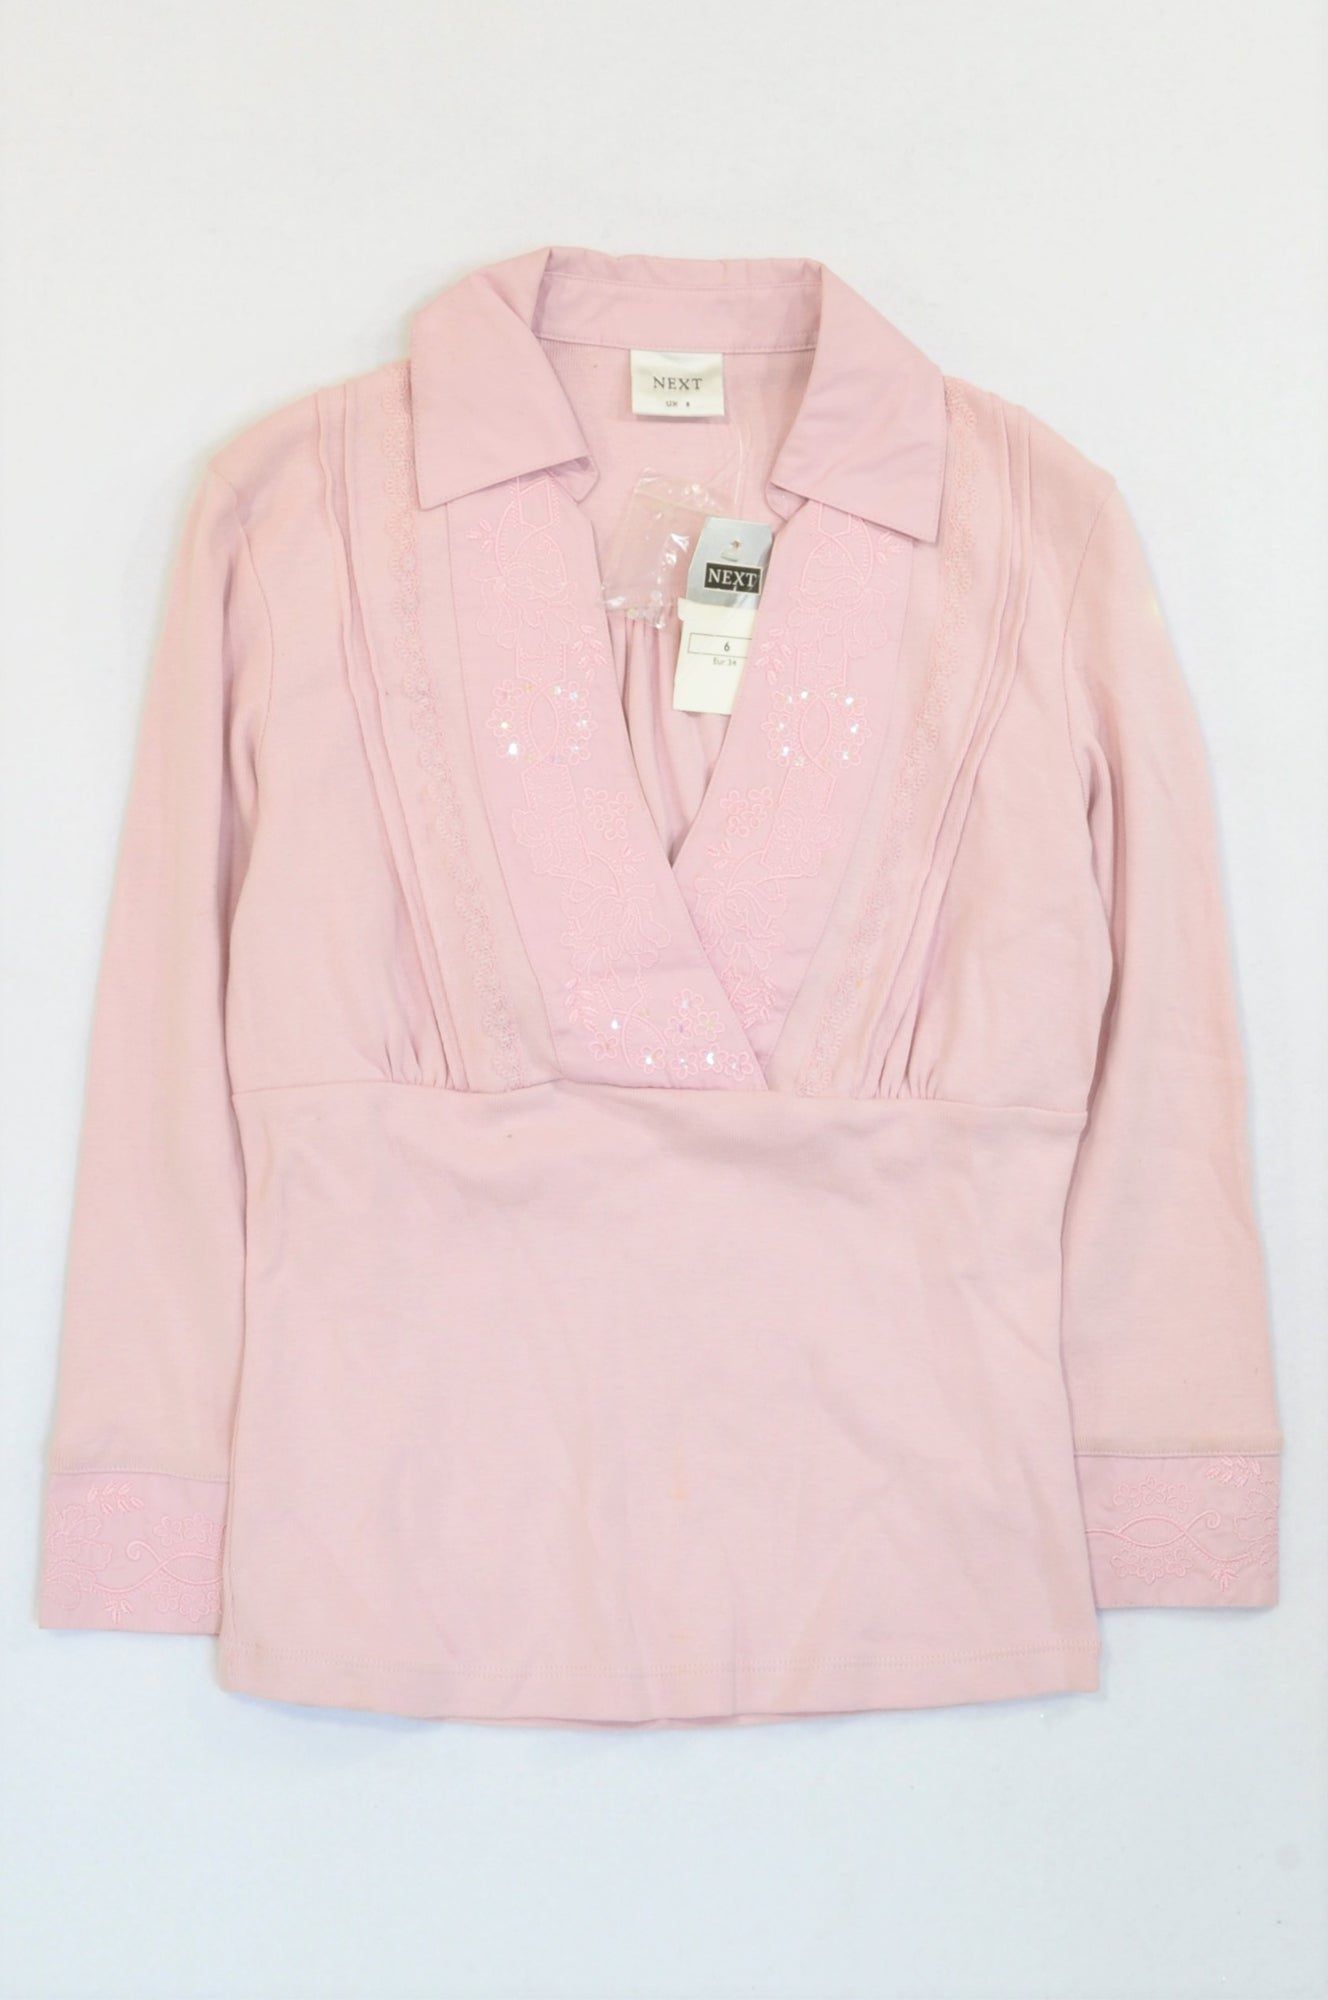 New Next Pink Embroidered Lapel Shirt Women Size 6